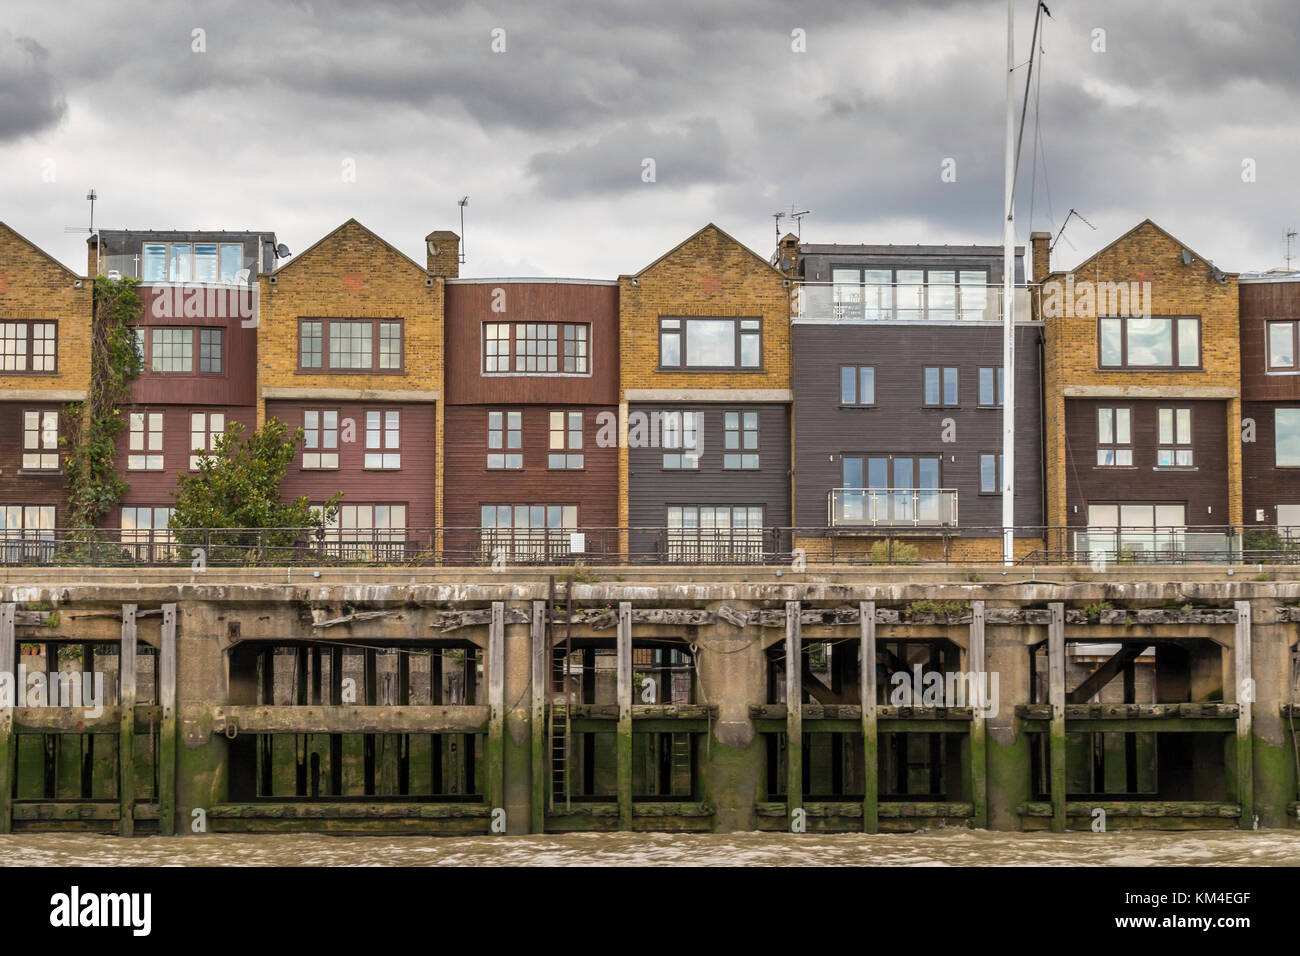 Riverside Apartments and Flats Overlooking the River Thames, Docklands ,London - Stock Image